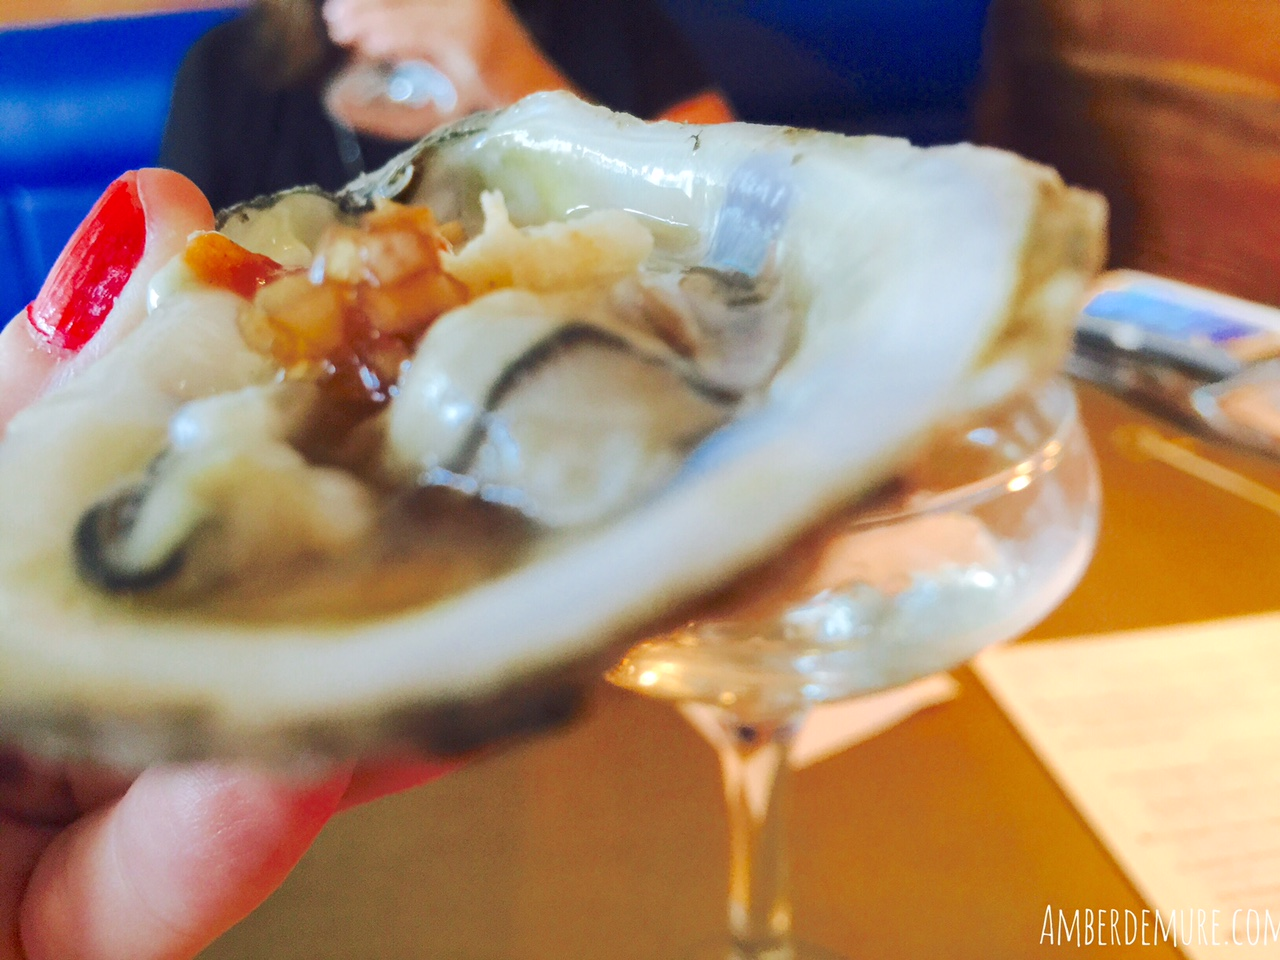 Oyster Fever: Liberty Kitchen | amber demure